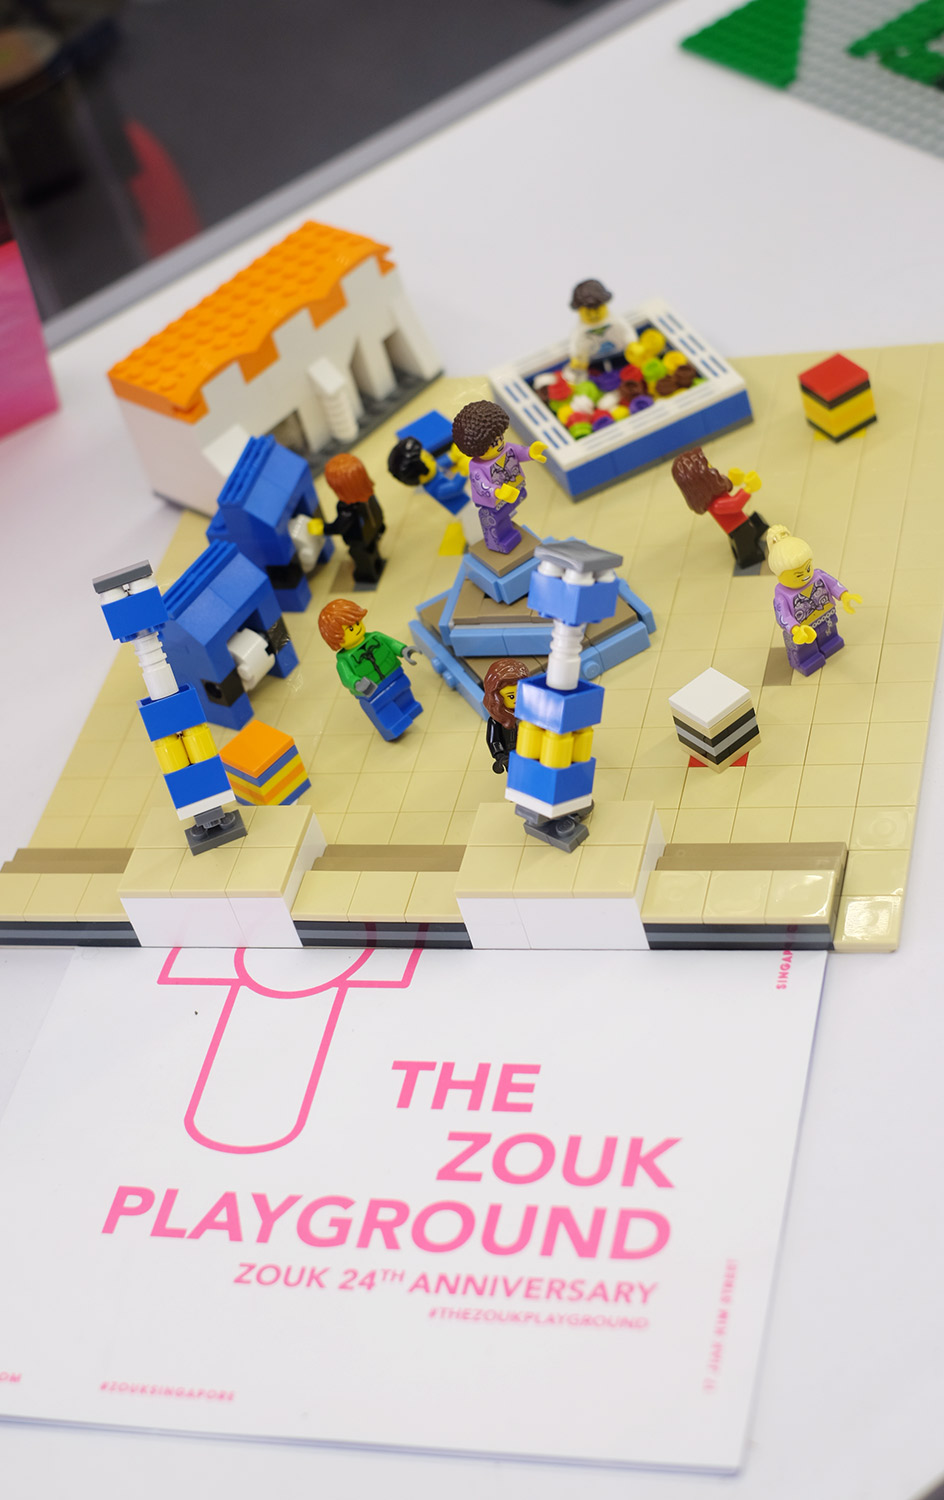 LEGO-Showcase--SG50-Edition--Little-Red-Brick-LUG-Show-zouk-top